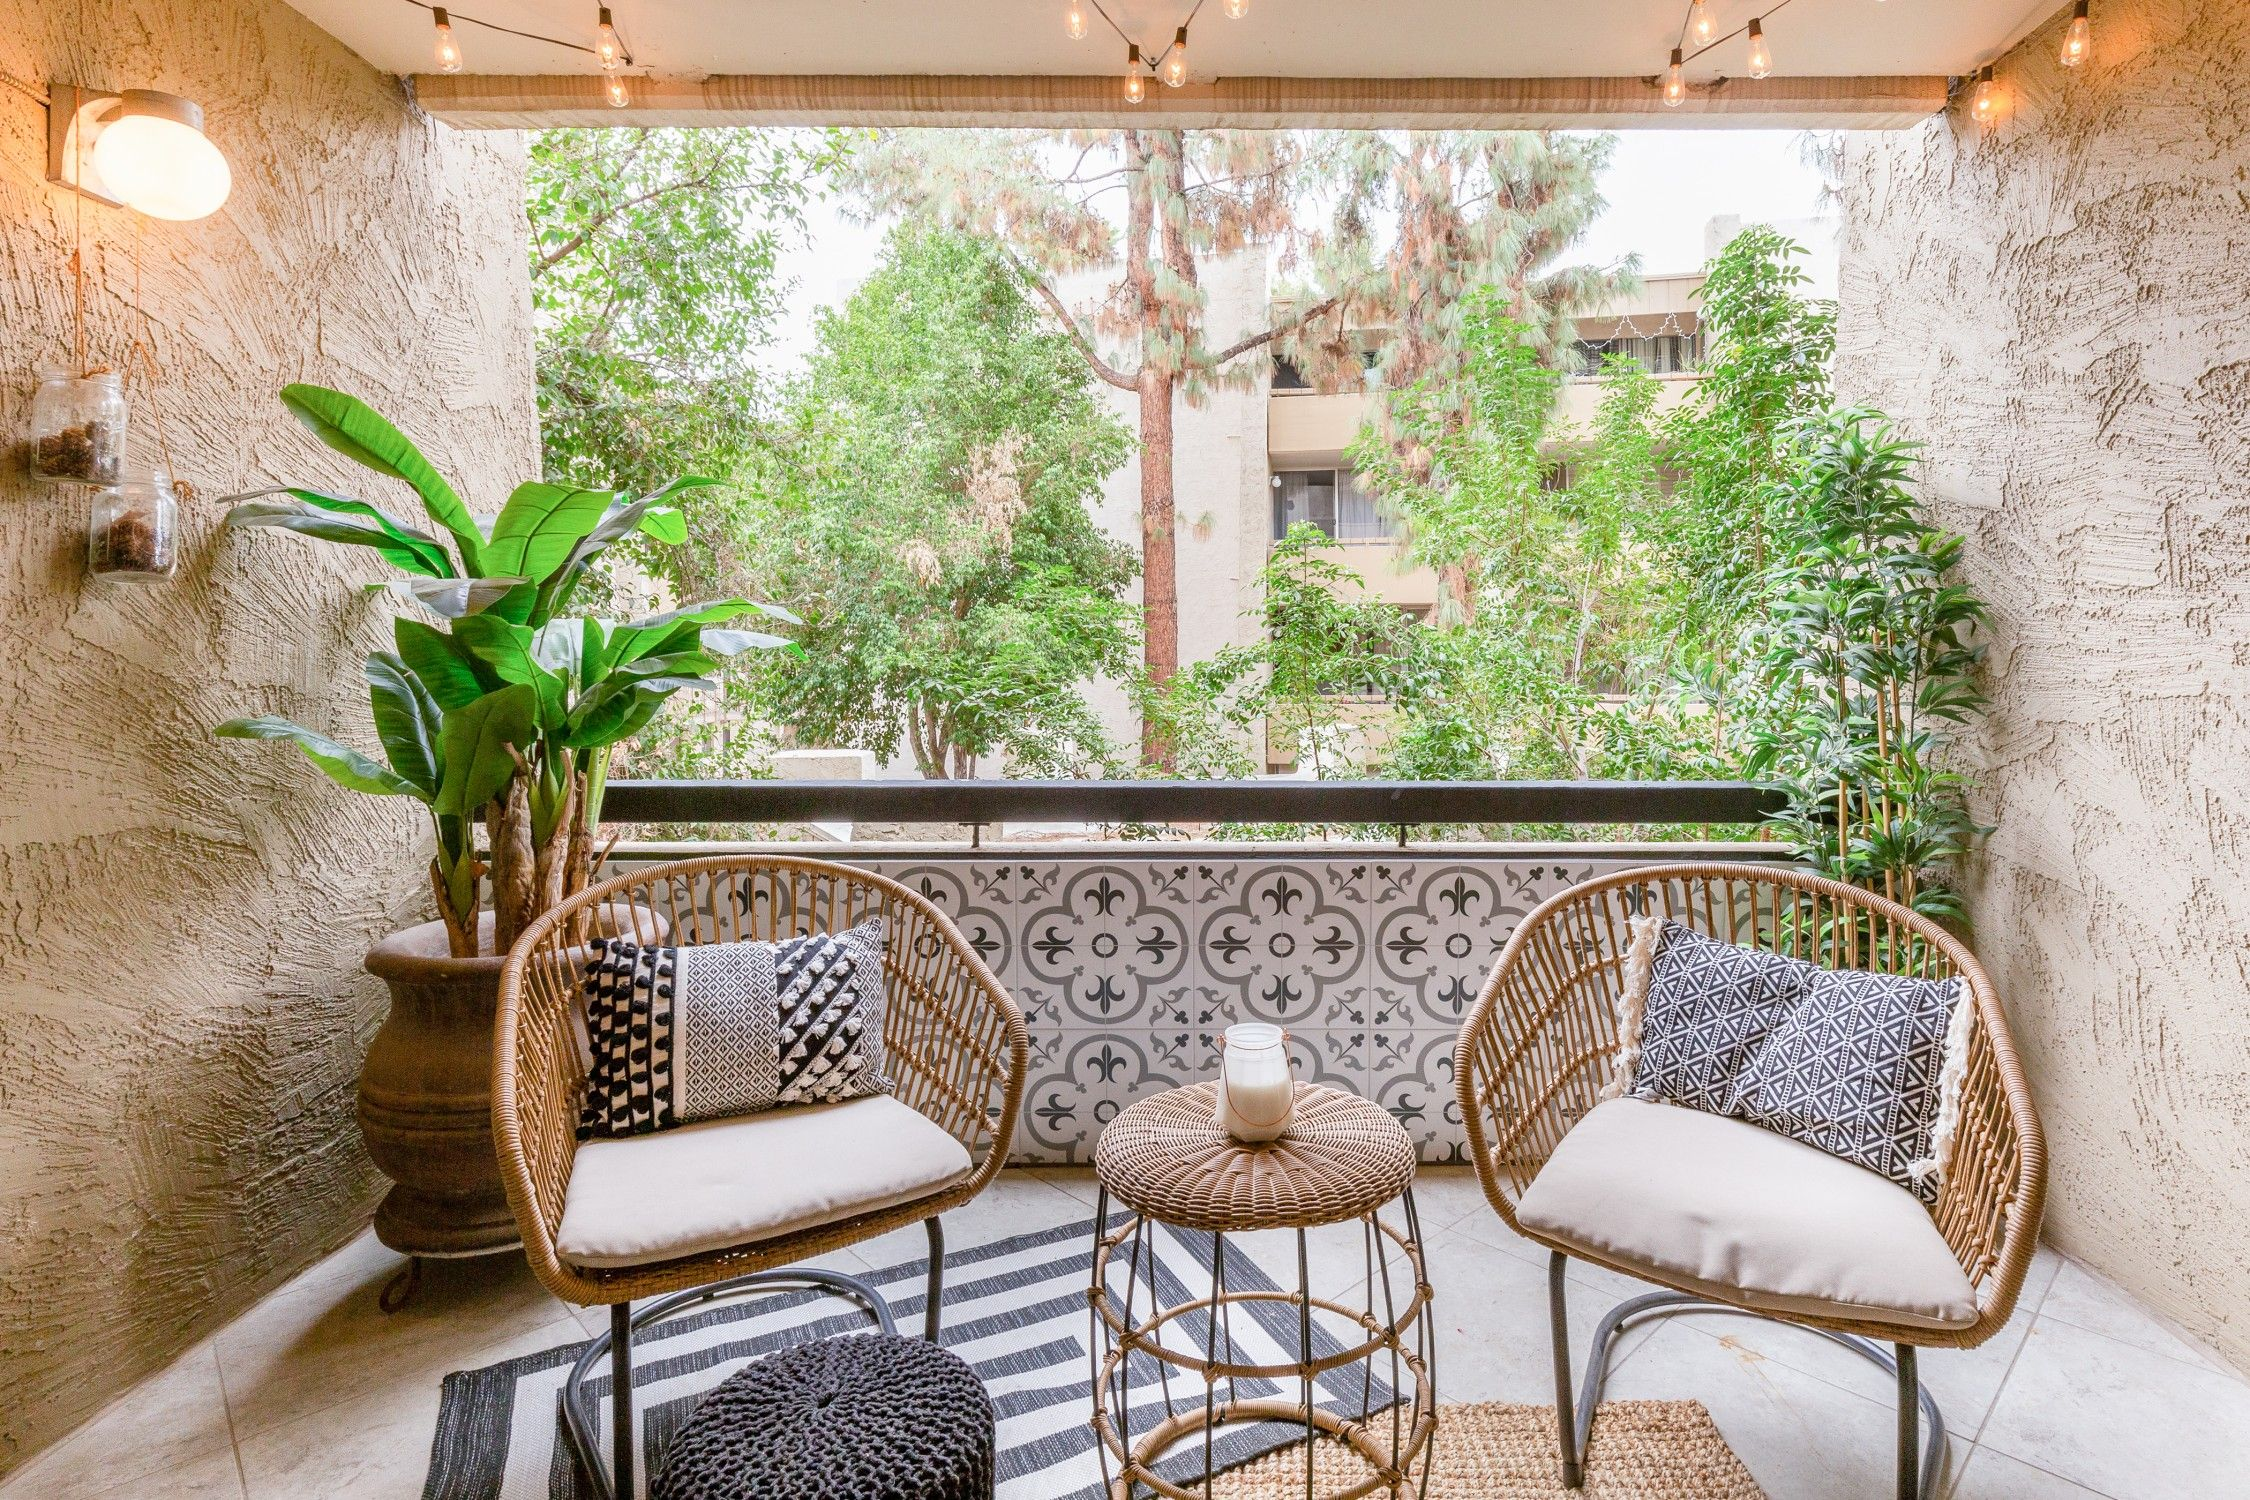 Entire Home Apt In Scottsdale United States Take A Seat In A Comfy Rattan Chair On The Balcony Attached T Resort Decor Old Town Scottsdale Scottsdale Resorts